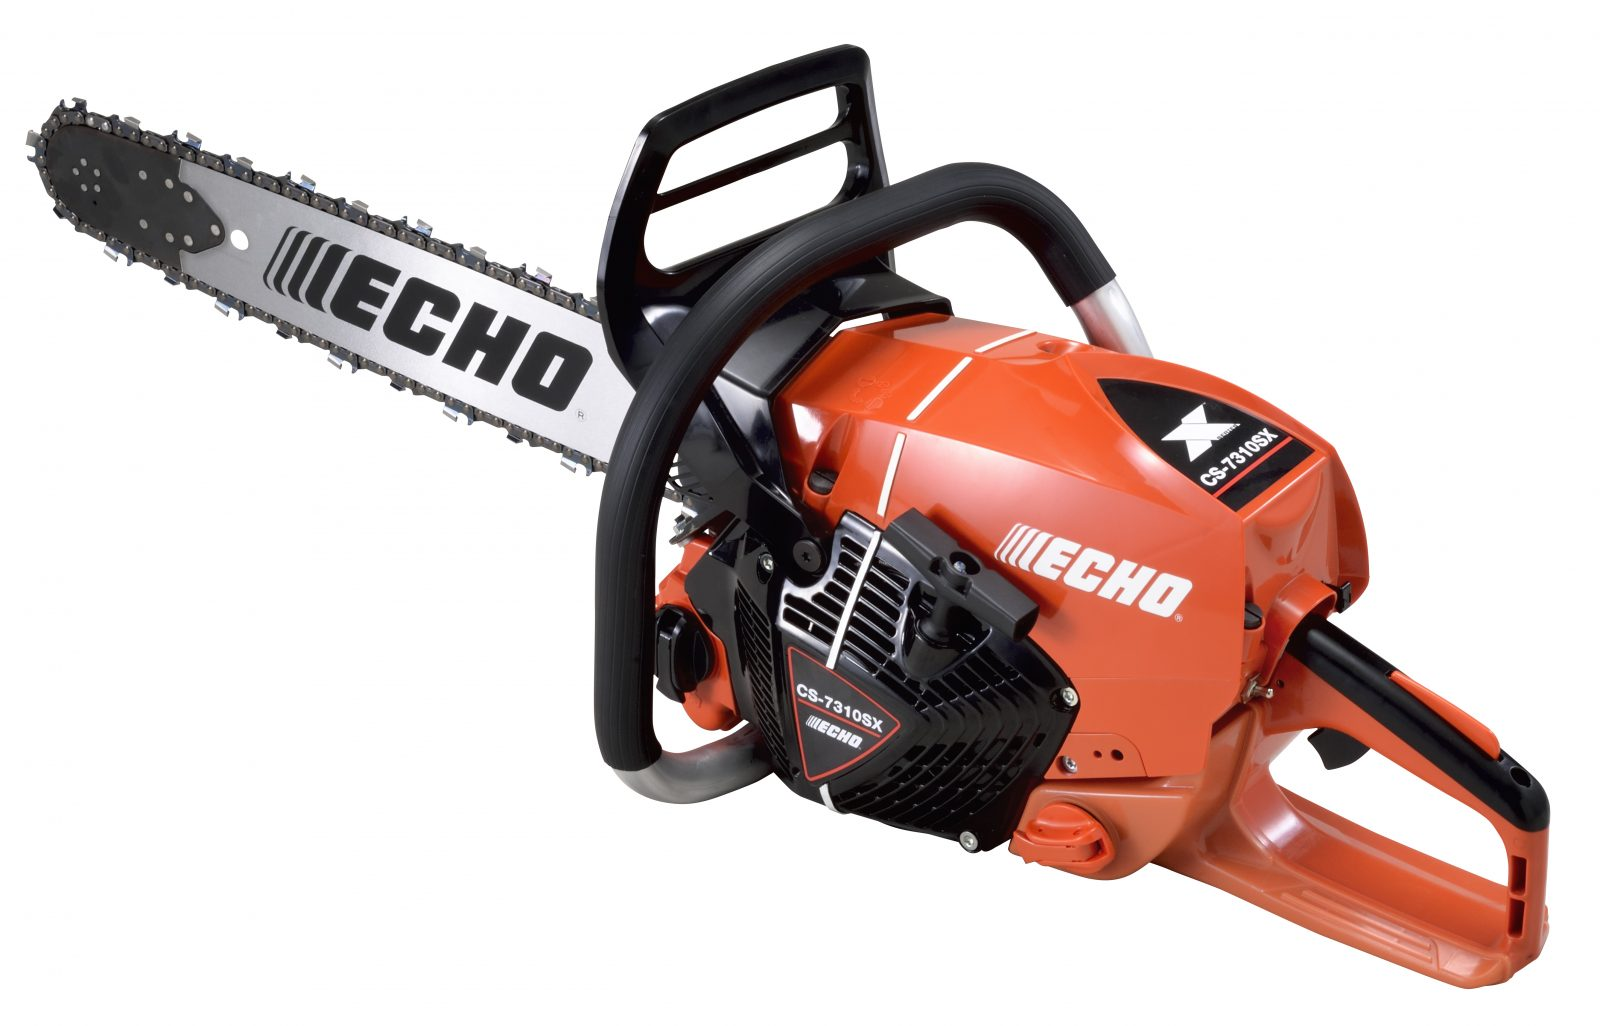 ECHO launches largest professional chainsaw